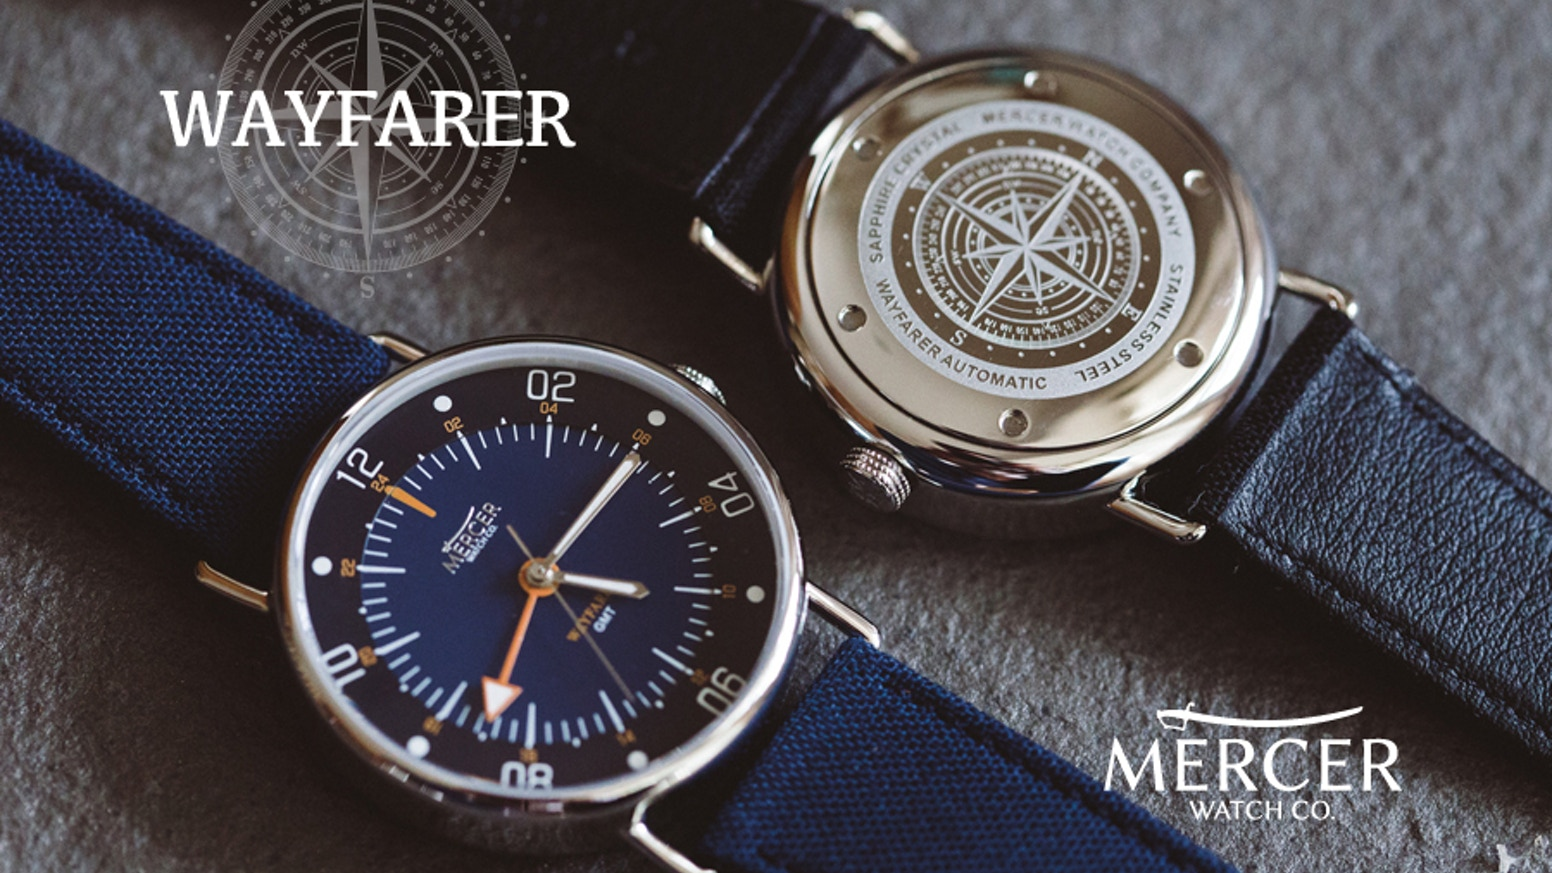 The Wayfarer is an automatic watch powered by your movement that keeps time in two time zones simultaneously.